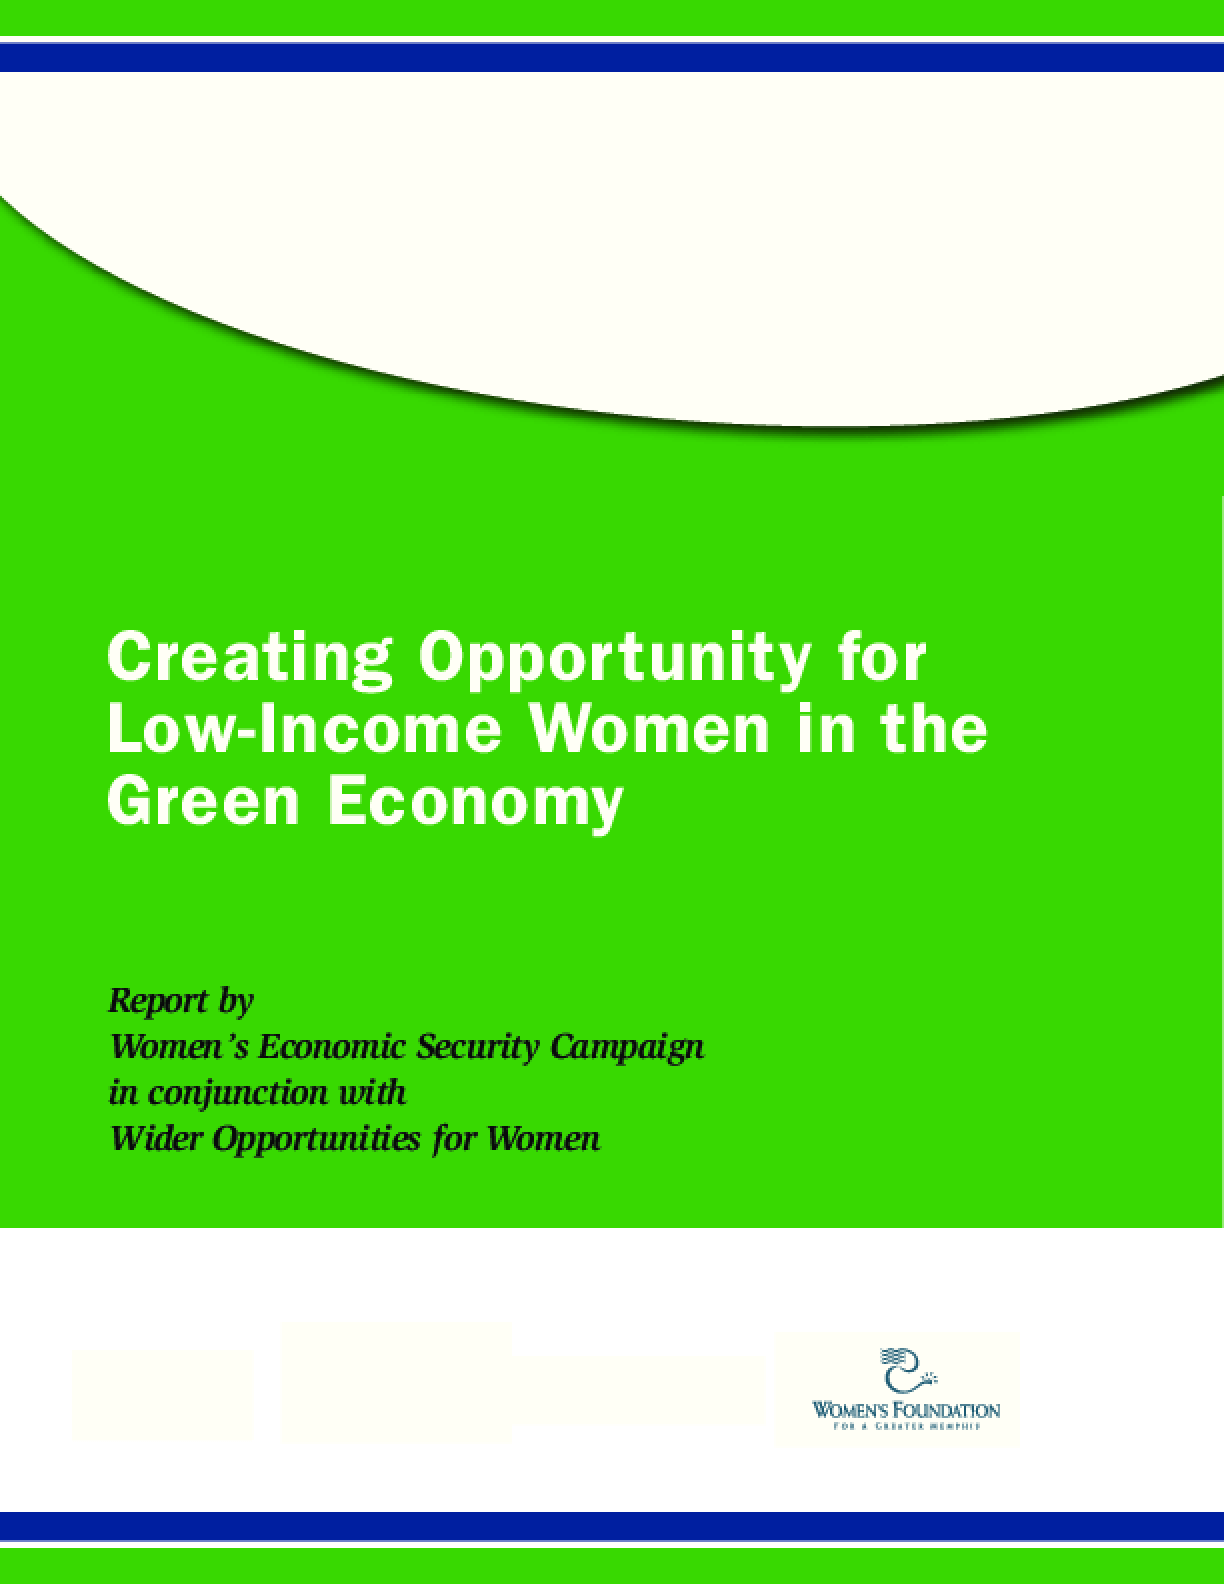 Creating Opportunity for Low-Income Women in the Green Economy